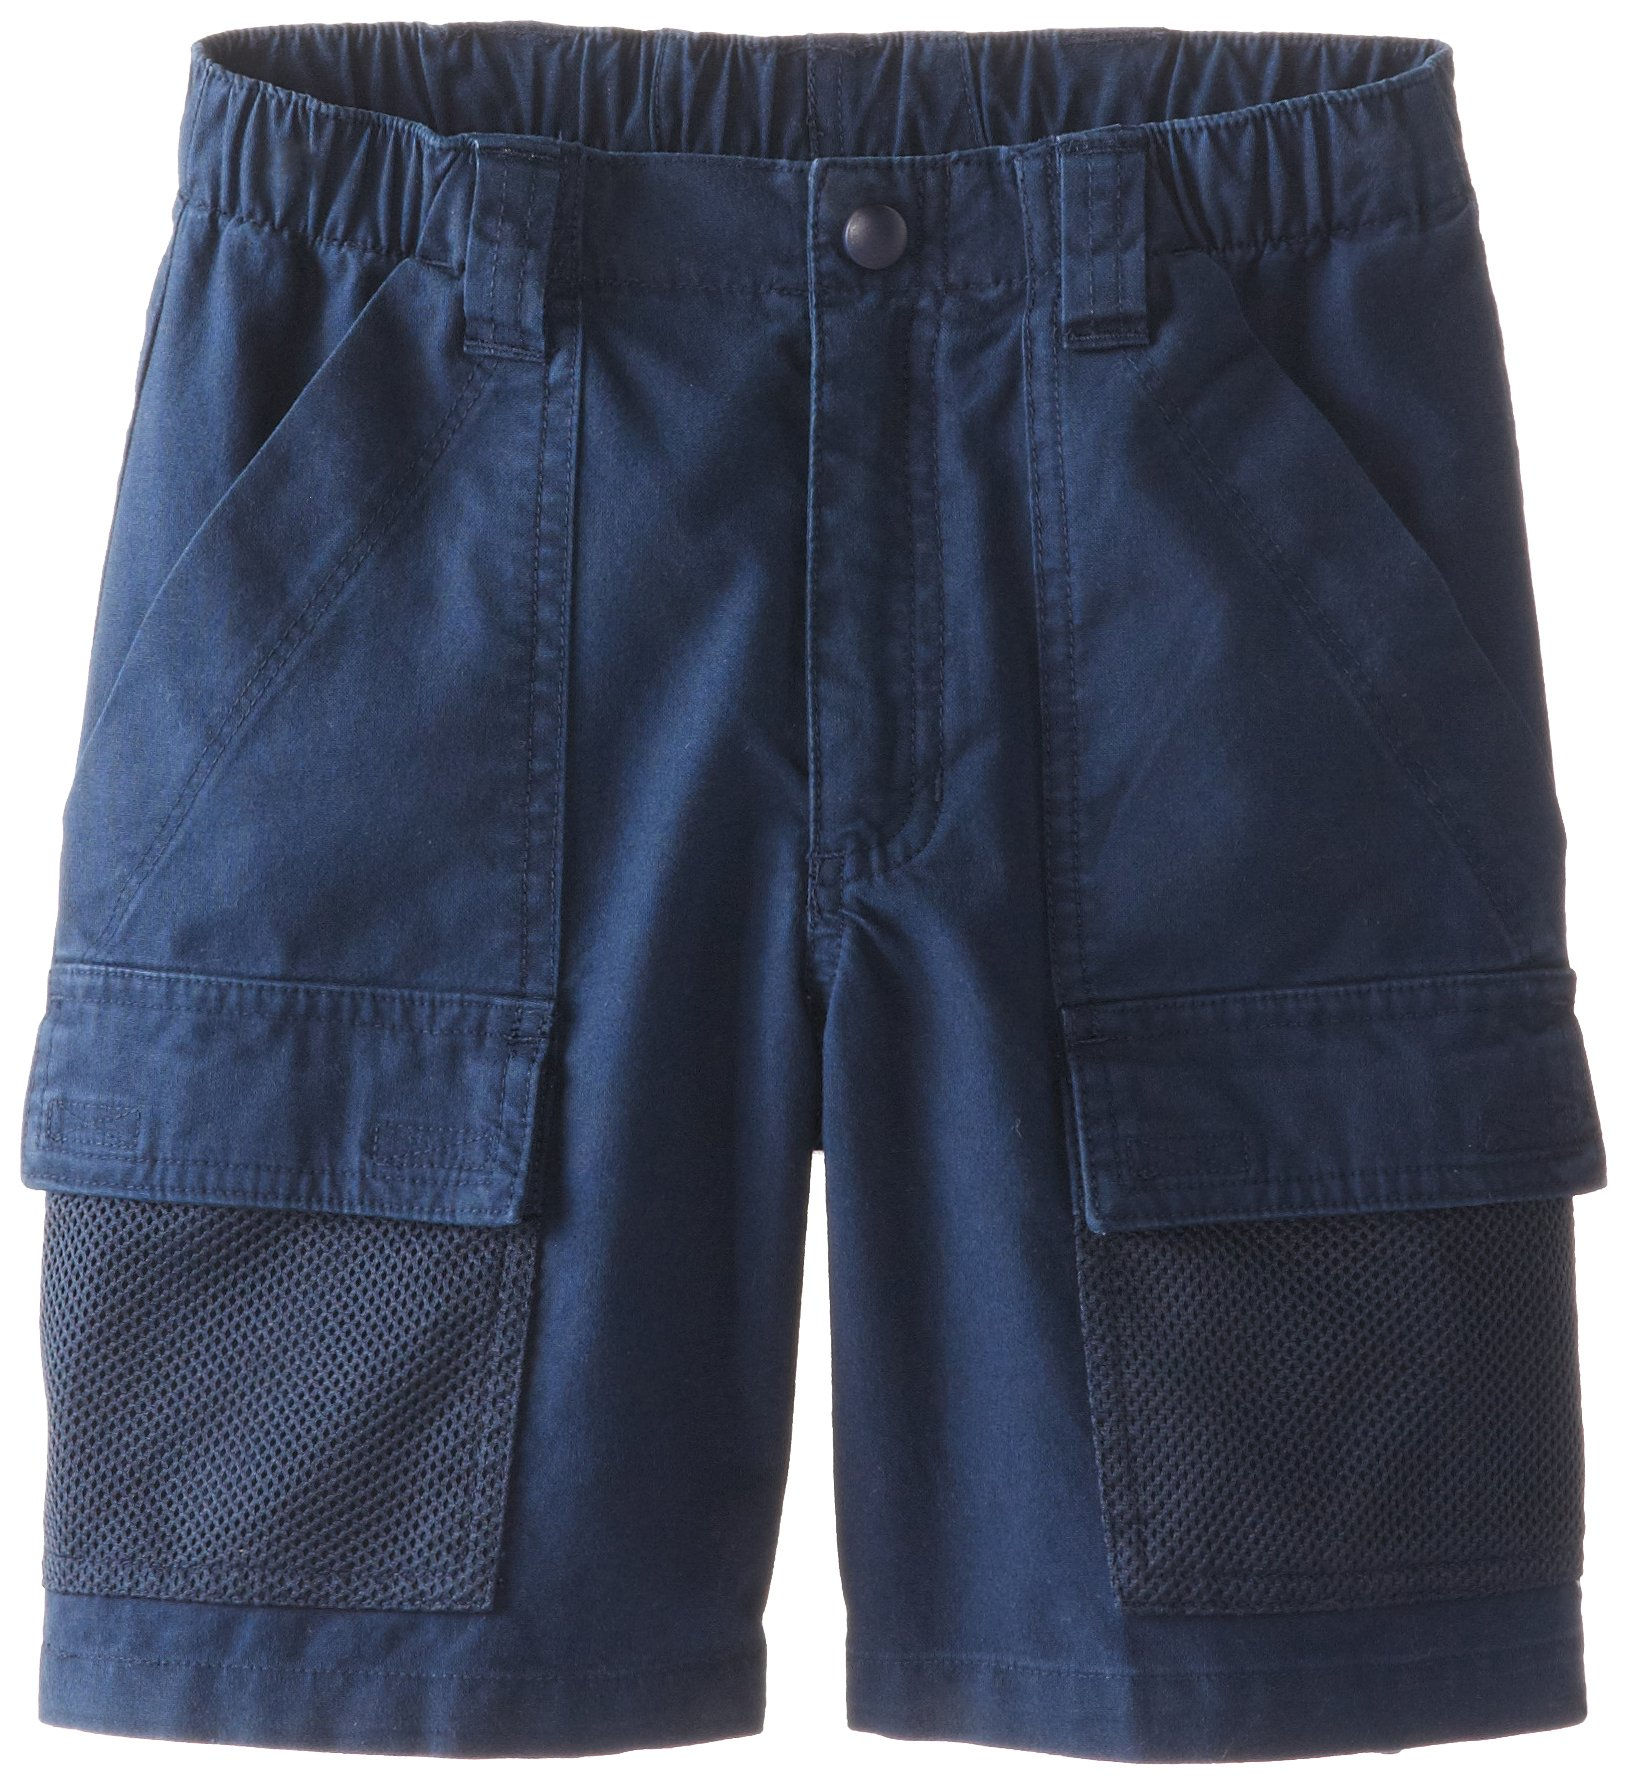 Columbia Youth Boys' Half Moon Short, Breathable, UPF 15 Sun Protection, Collegiate Navy, Small